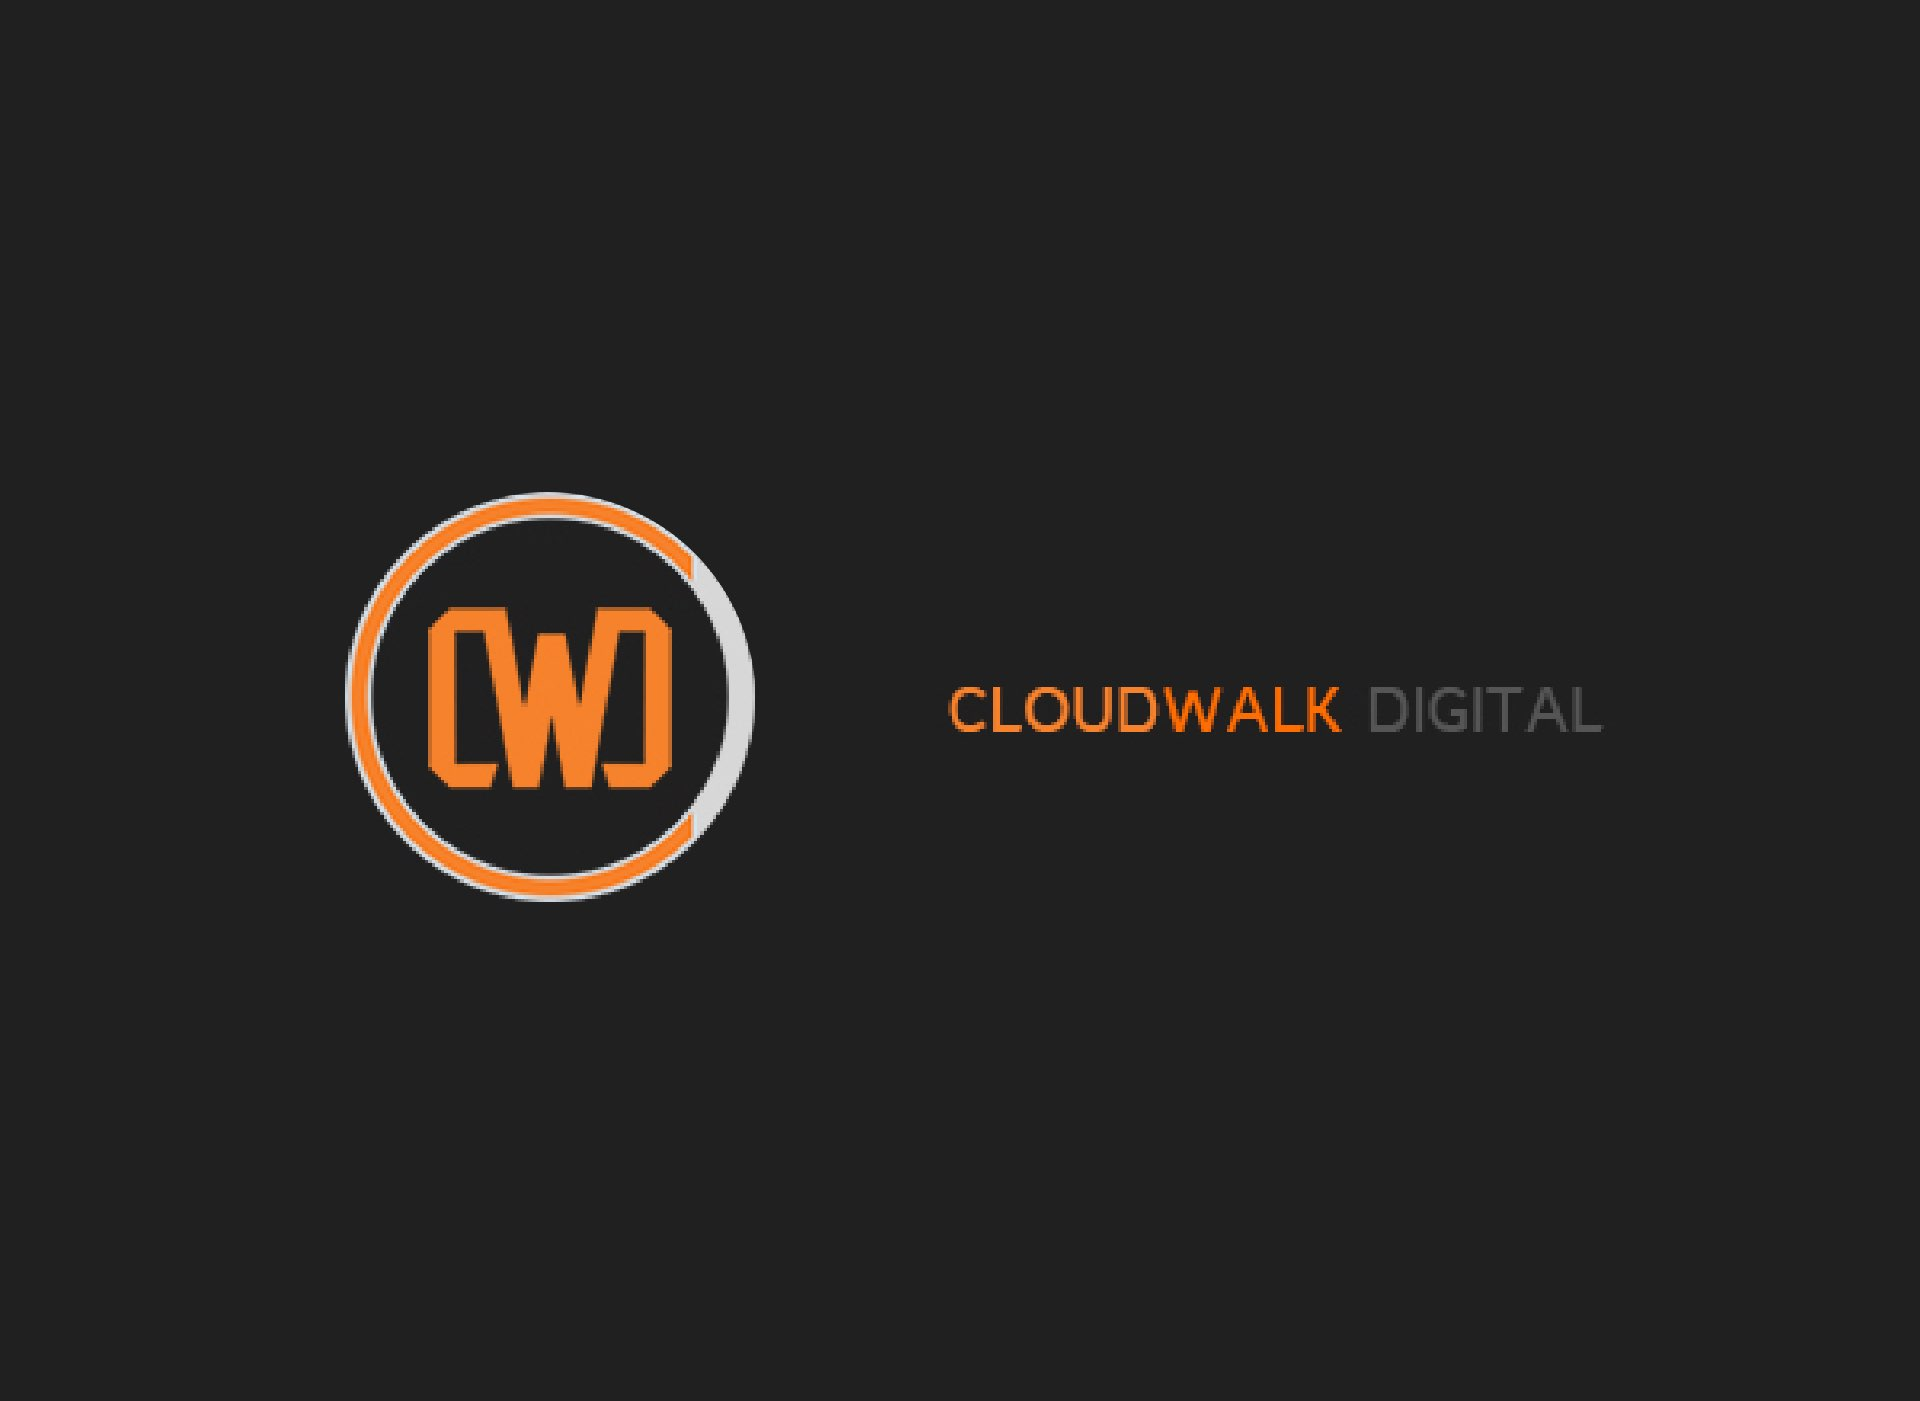 CloudWalk Digital, Inc